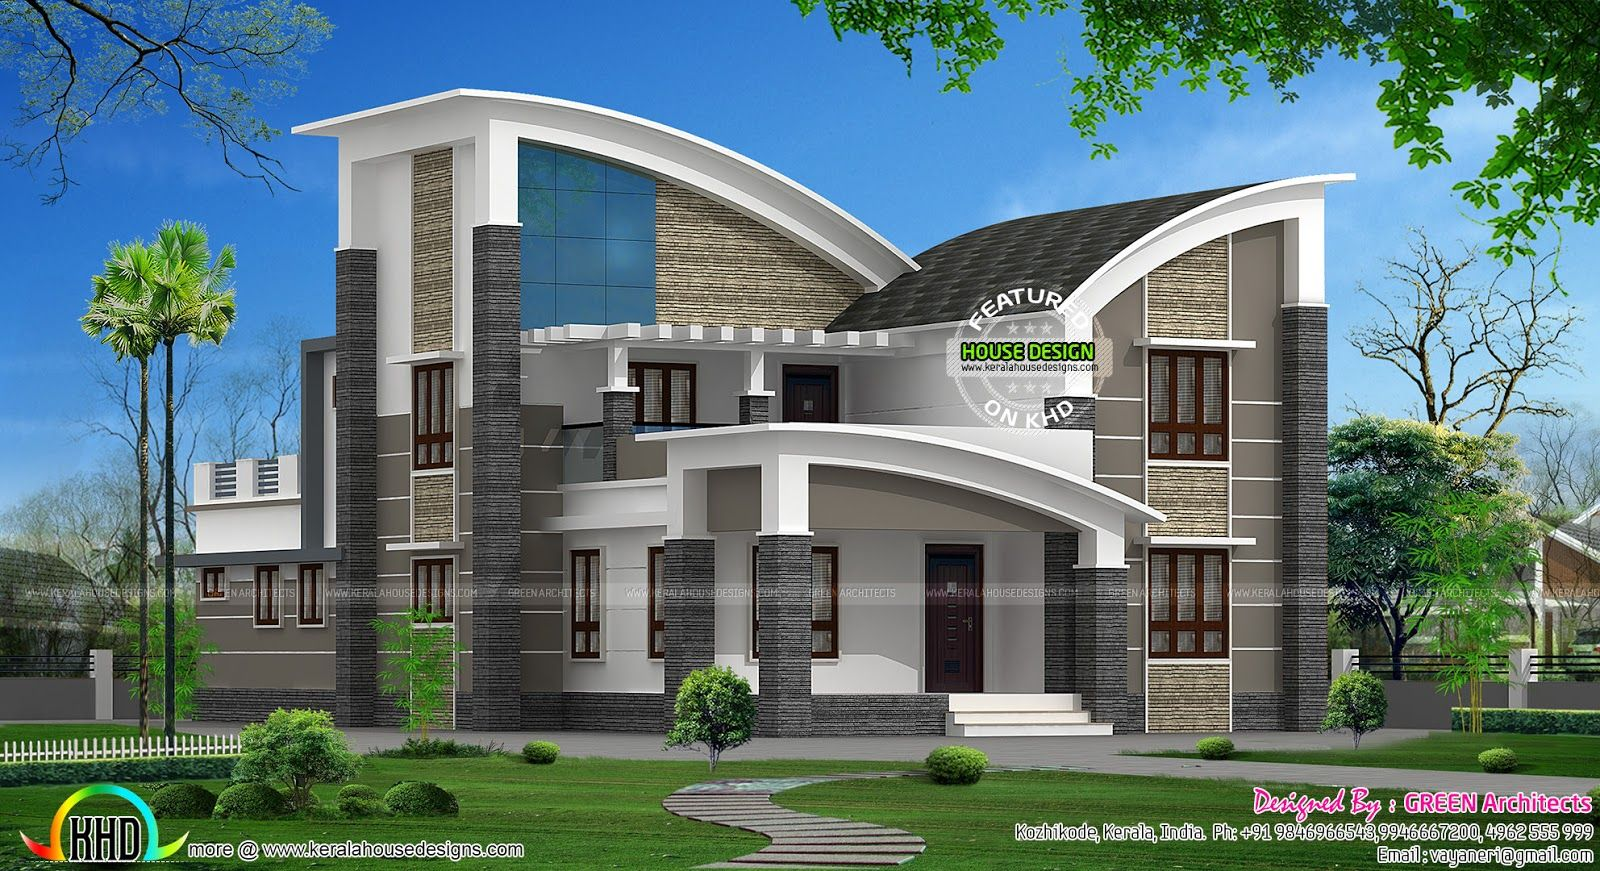 Modern style curved roof villa home inspiration for House design modern style